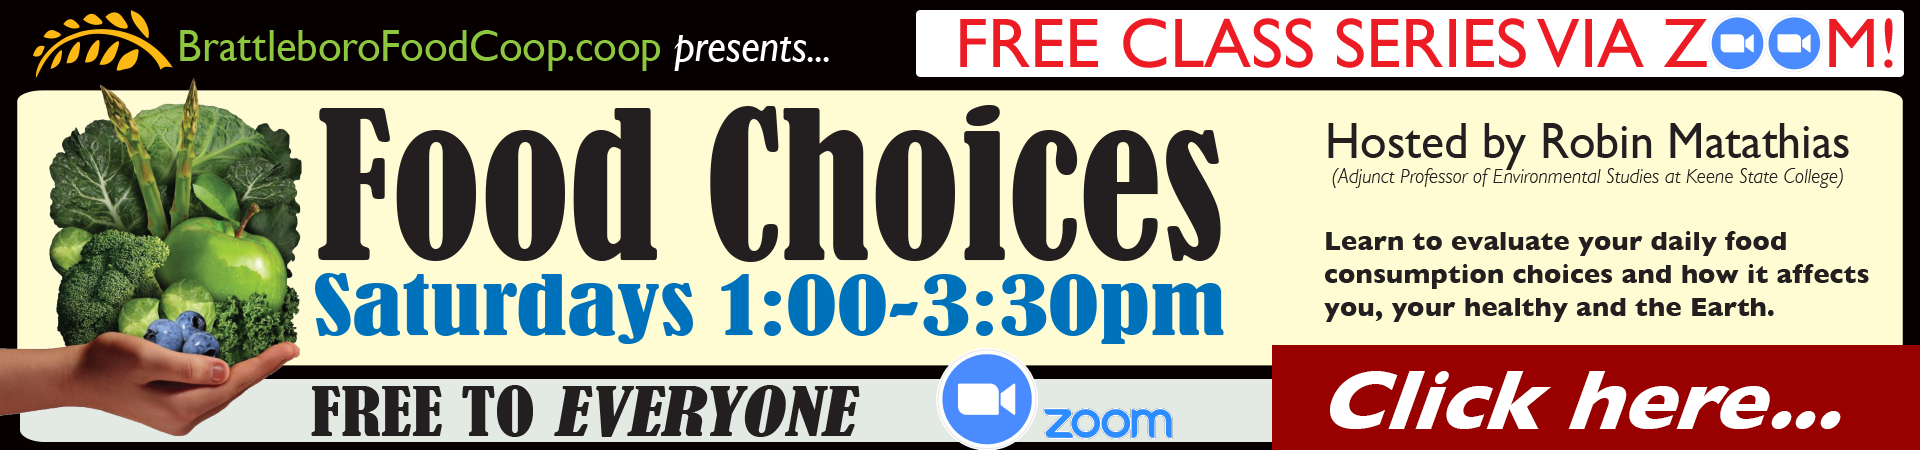 Food Choices Free Class Series